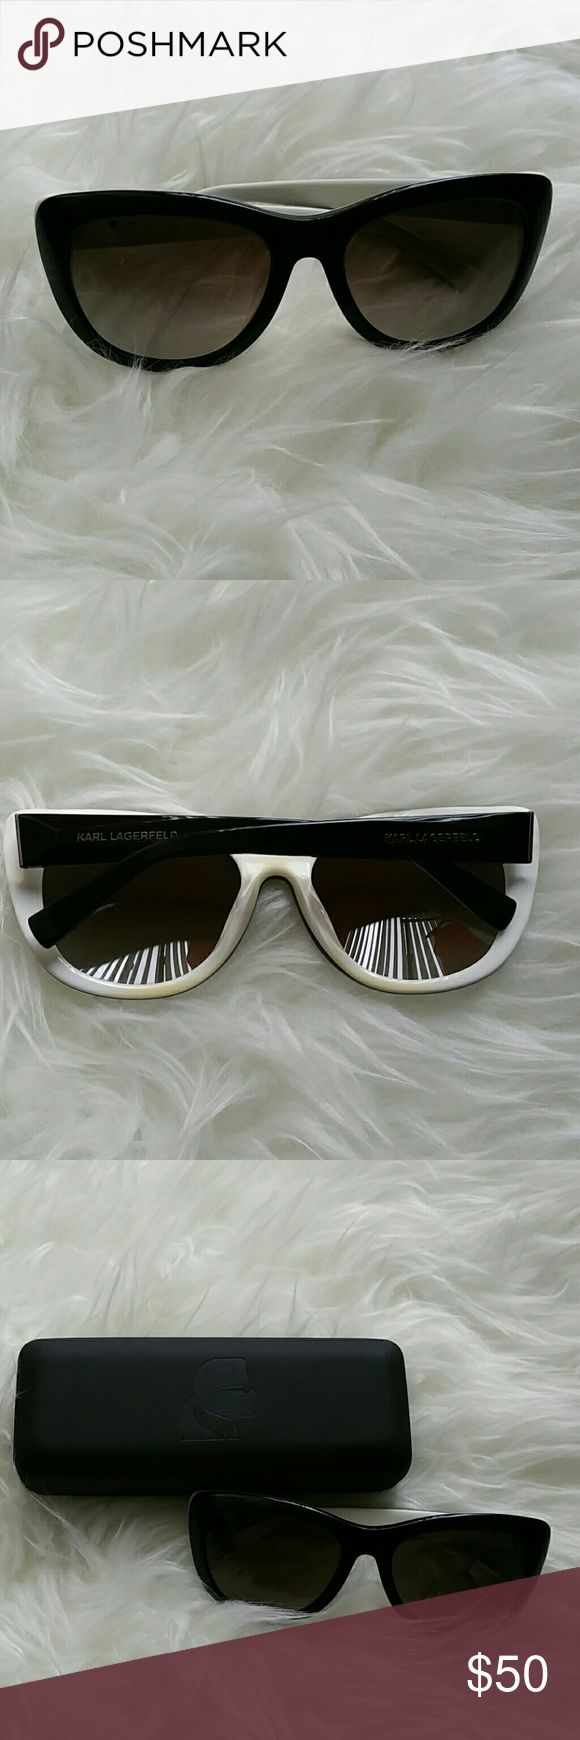 Karl Lagerfeld sunglasses Cat/horn rimmed glasses. Very stylish. Note yellowish discoloration on the inside/white part due to makeup. Comes with original case. Very minor scratch on upper left corner of left lens, but vision and visibility not impaired. Pictures don't do these glasses justice. Karl Lagerfeld Accessories Sunglasses